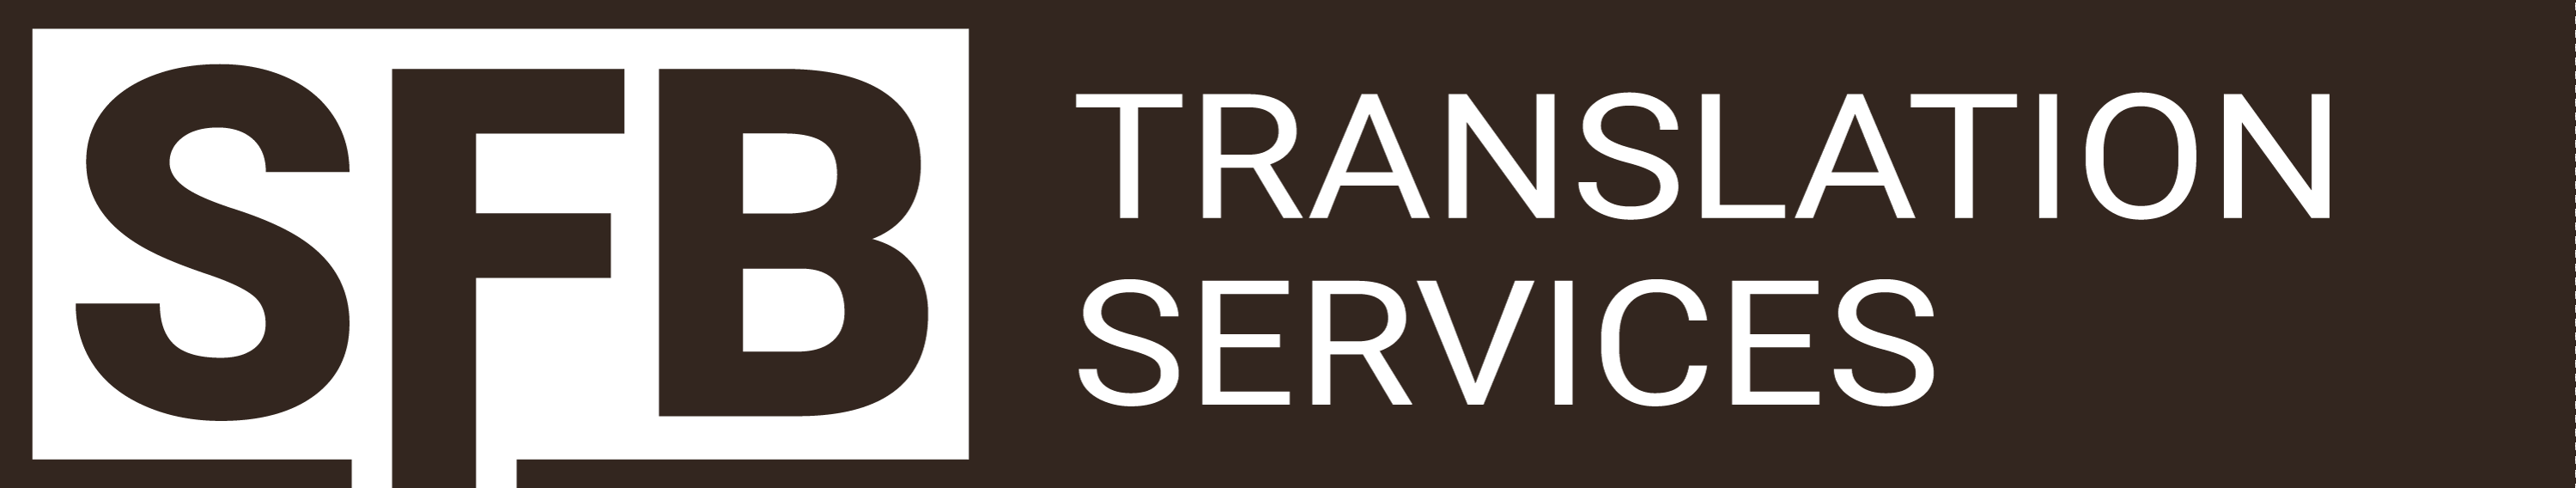 SFB Translation Services